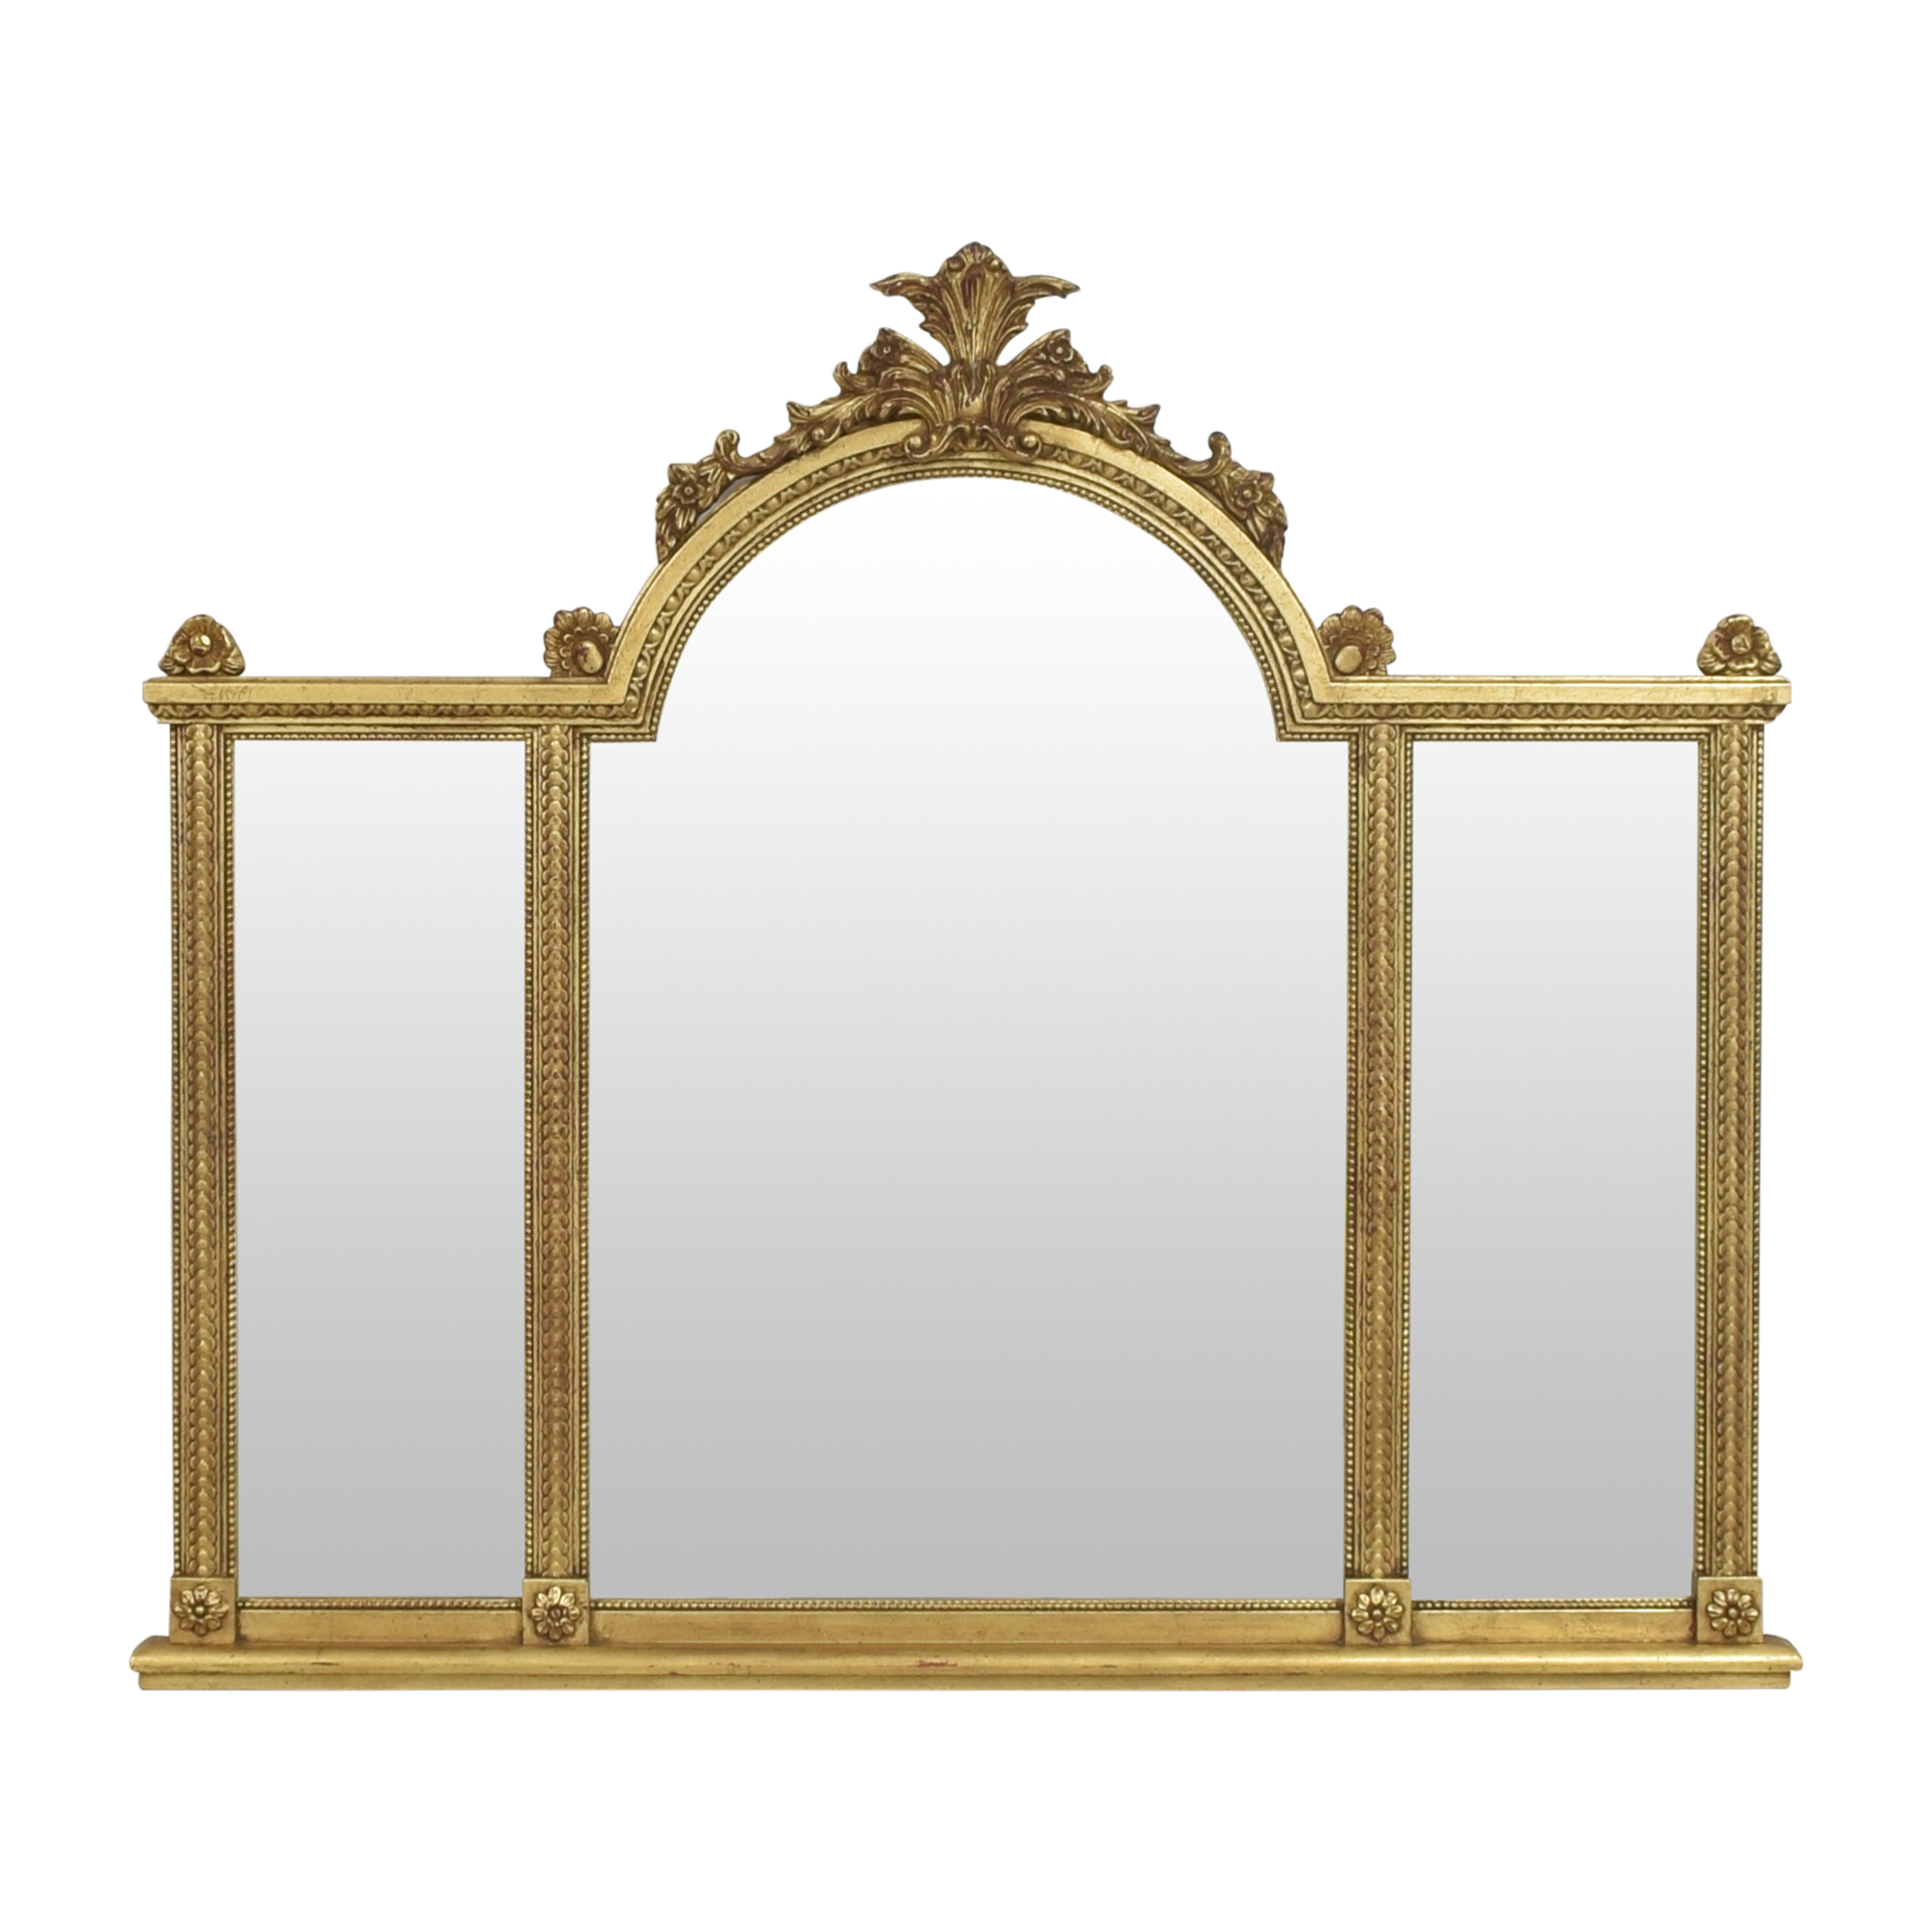 La Barge La Barge Ornate Three Panel Mirror nj